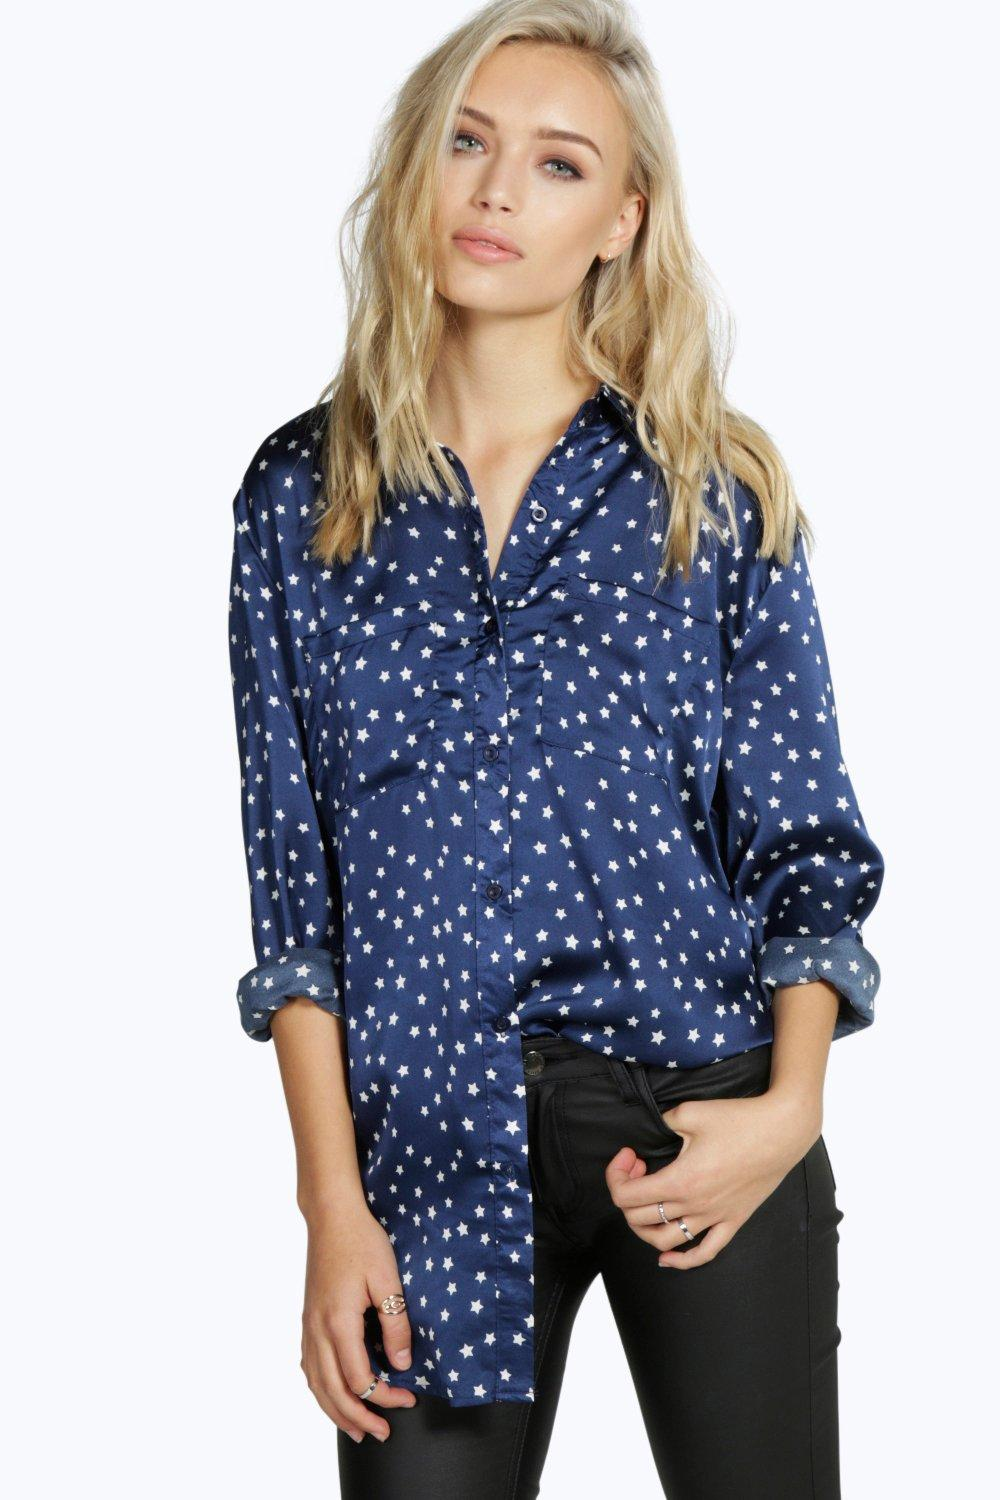 Molly Silky Star Print Shirt